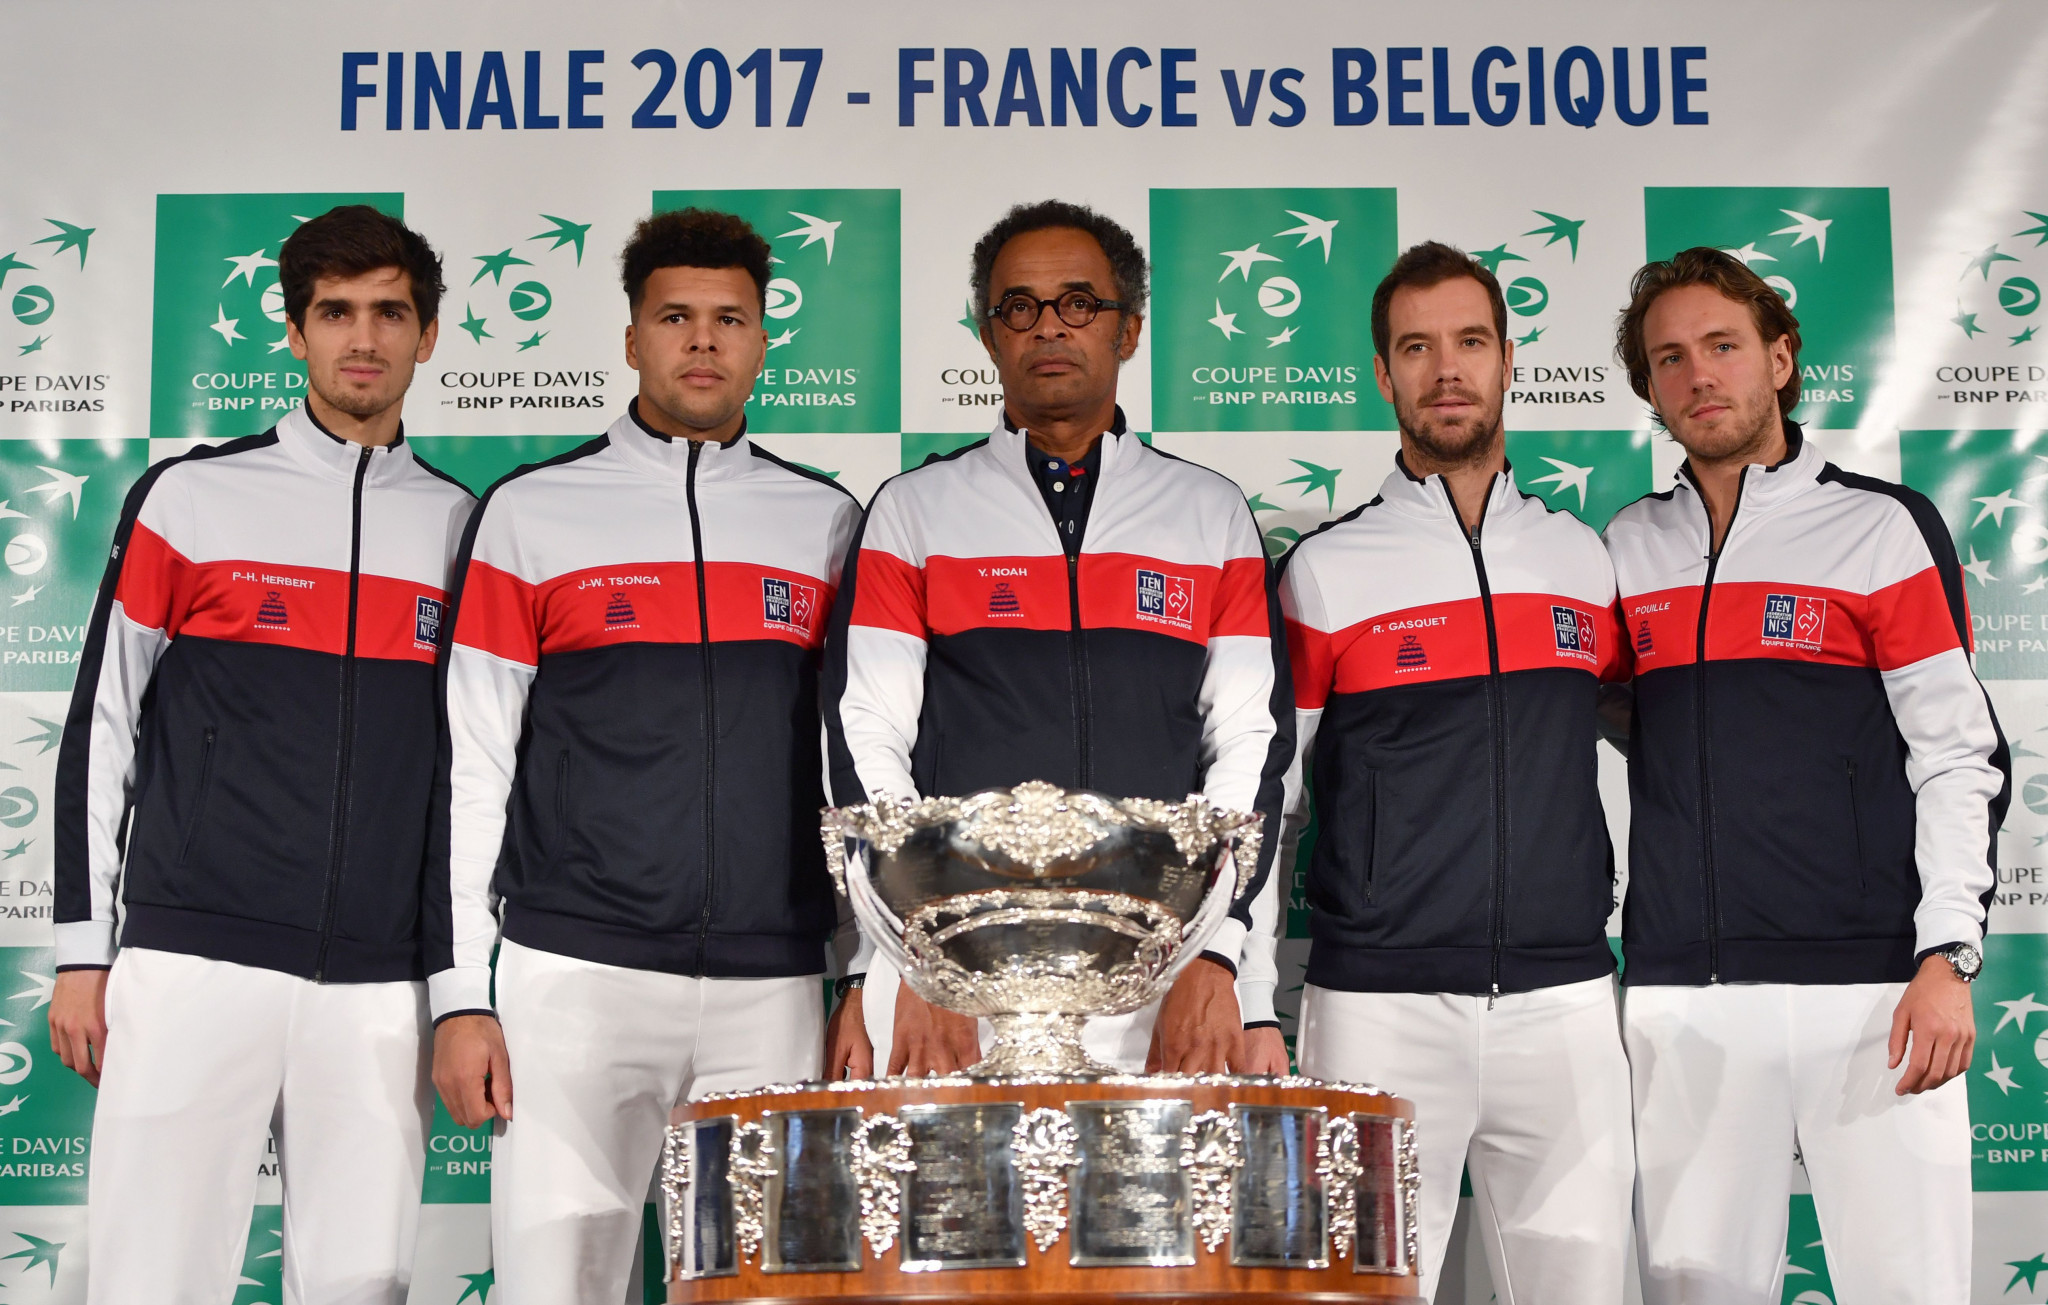 France's captain Yannick Noah (C) poses with his players (LtoR) Pierre-Hugues Herbert, Jo-Wilfried Tsonga, Richard Gasquet and Lucas Pouille during the team presentation in Villeneuve-d'Ascq on November 23, 2017, ahead of the Davis Cup World Group final between France and Belgium ©Getty Images